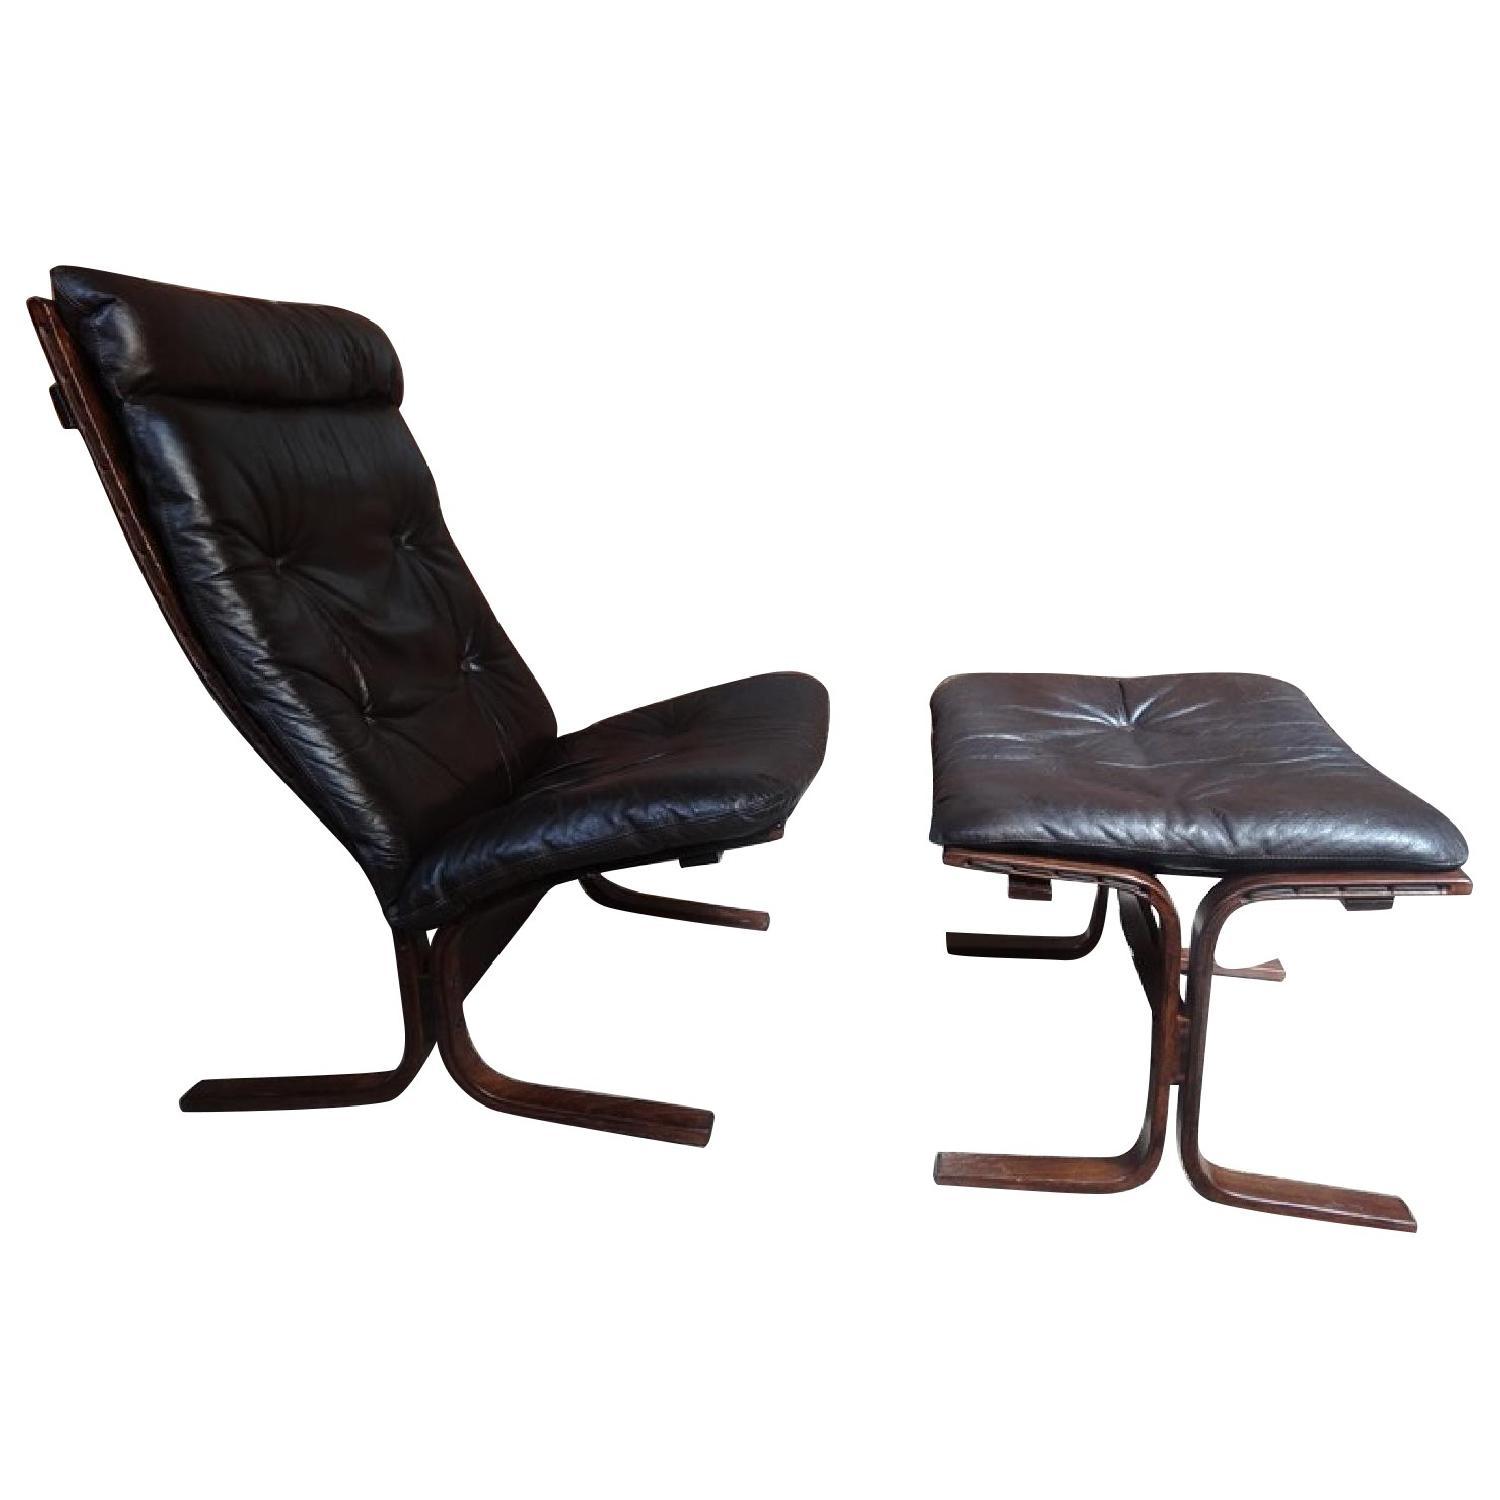 Relling Lounge Chair & Ottoman